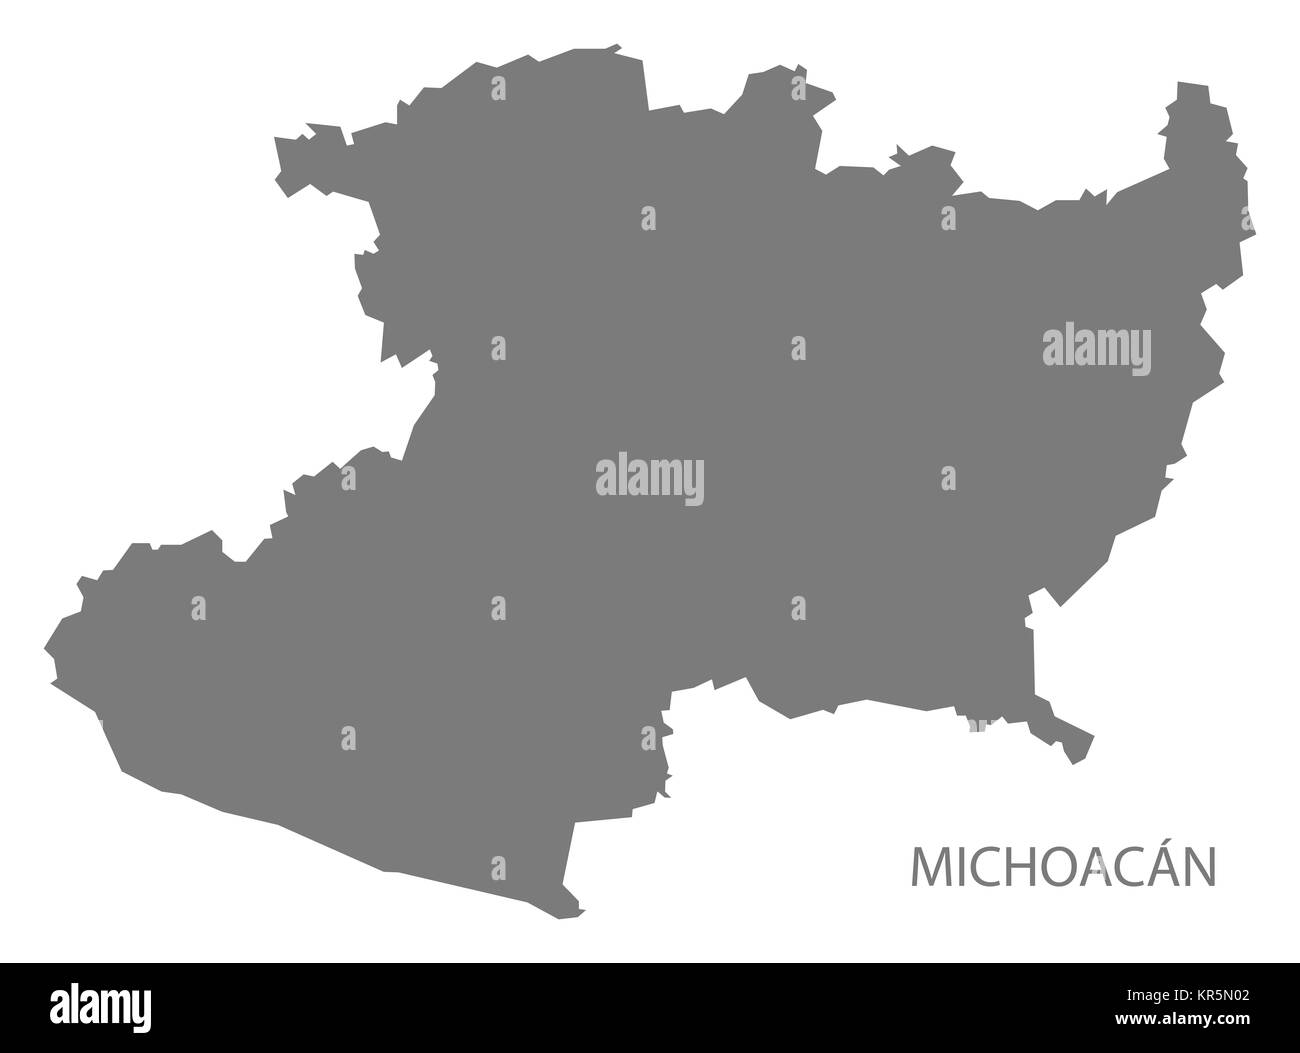 map of michoacan mexico state maps download map michoacan mexico michoacan mexico map grey kr5n02 michoacan